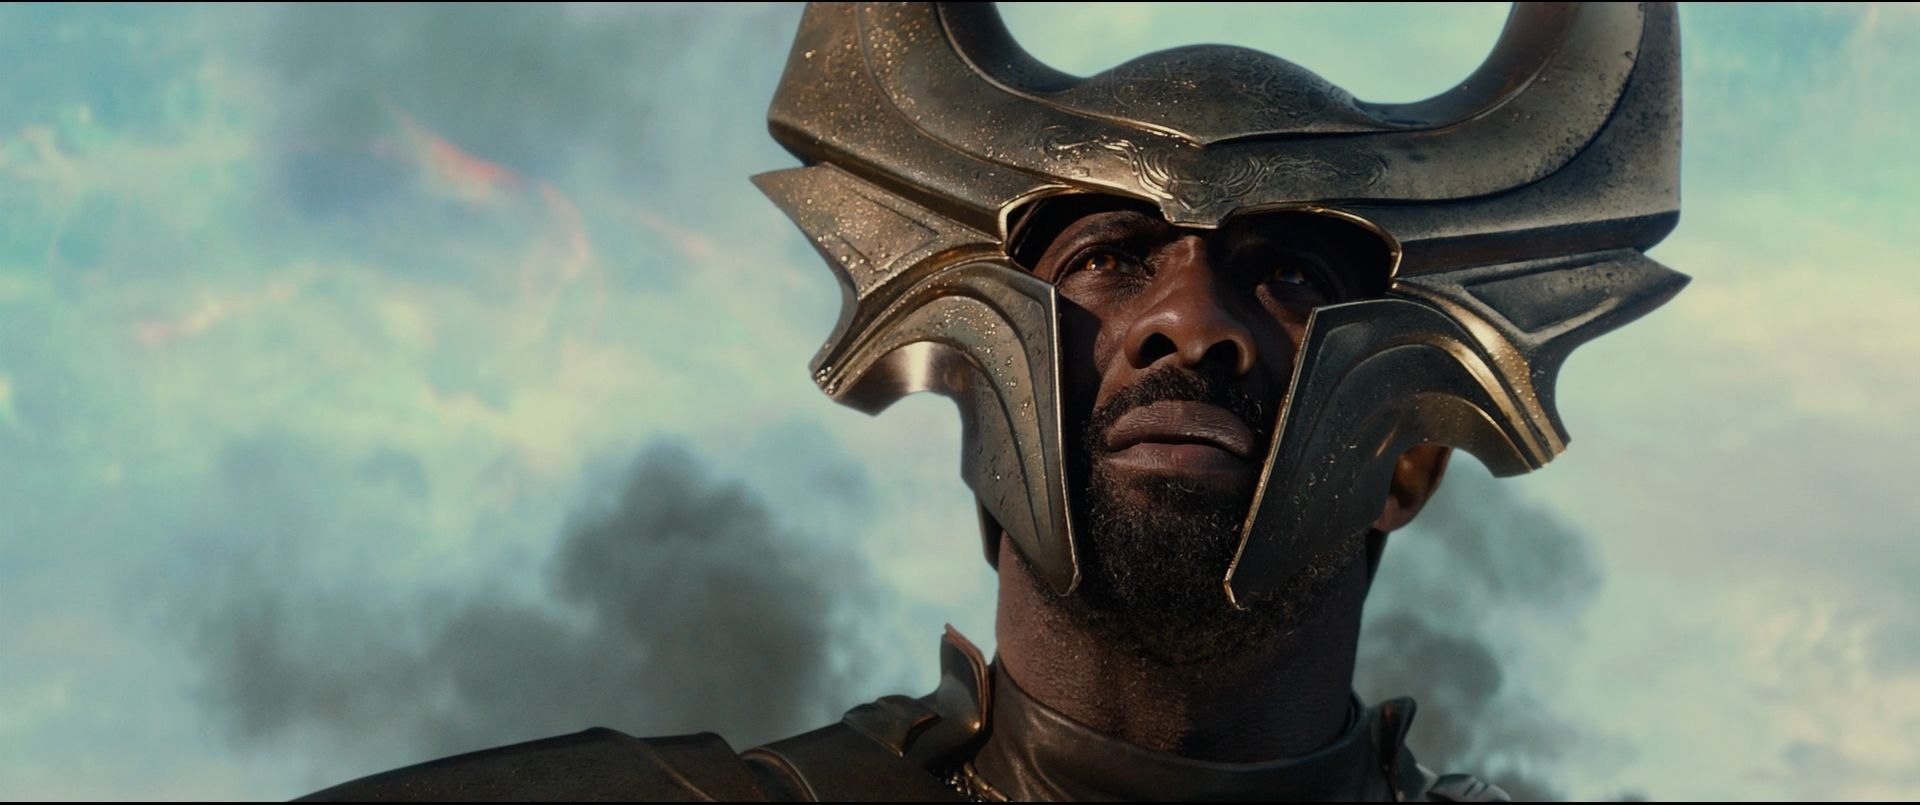 Idris Elba wants to come back to the MCU – here's how it could happen